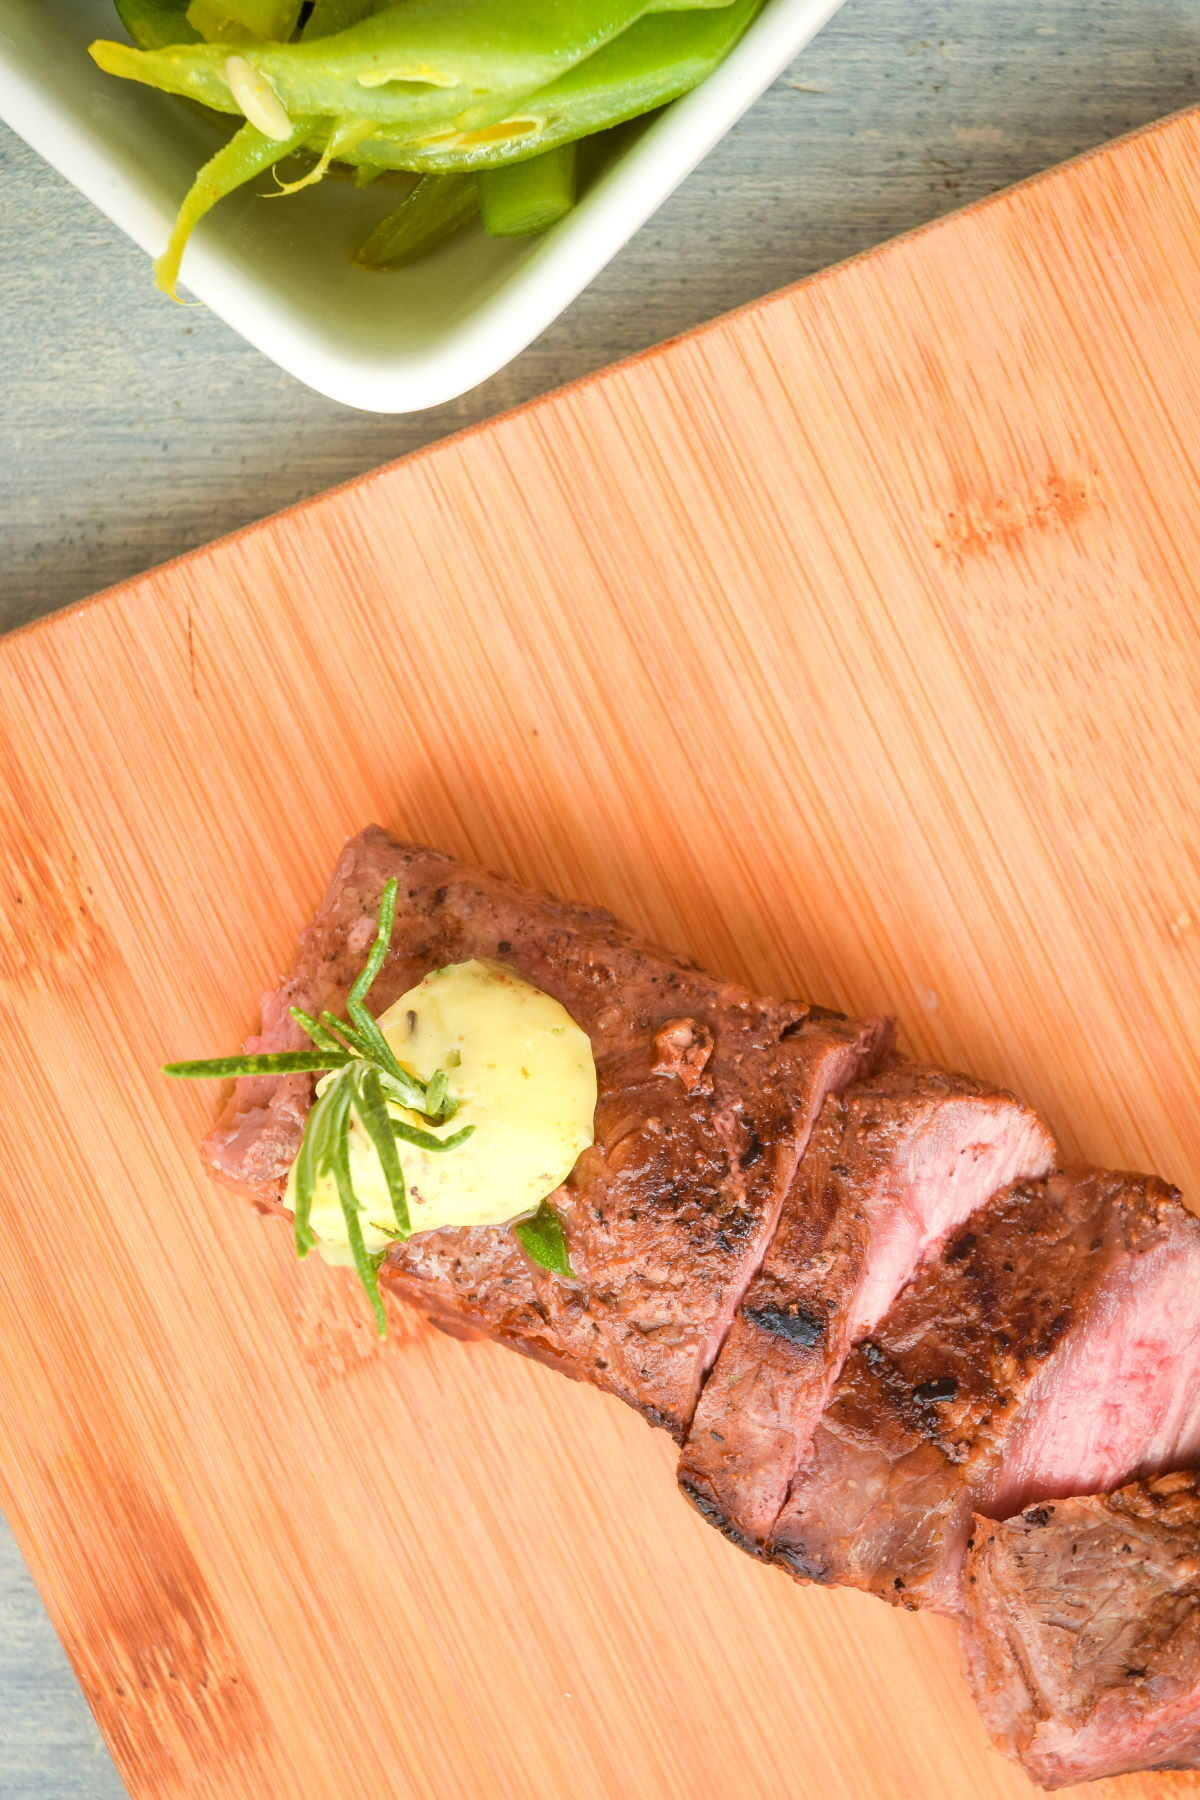 Sliced steak on a cutting board with herb butter.